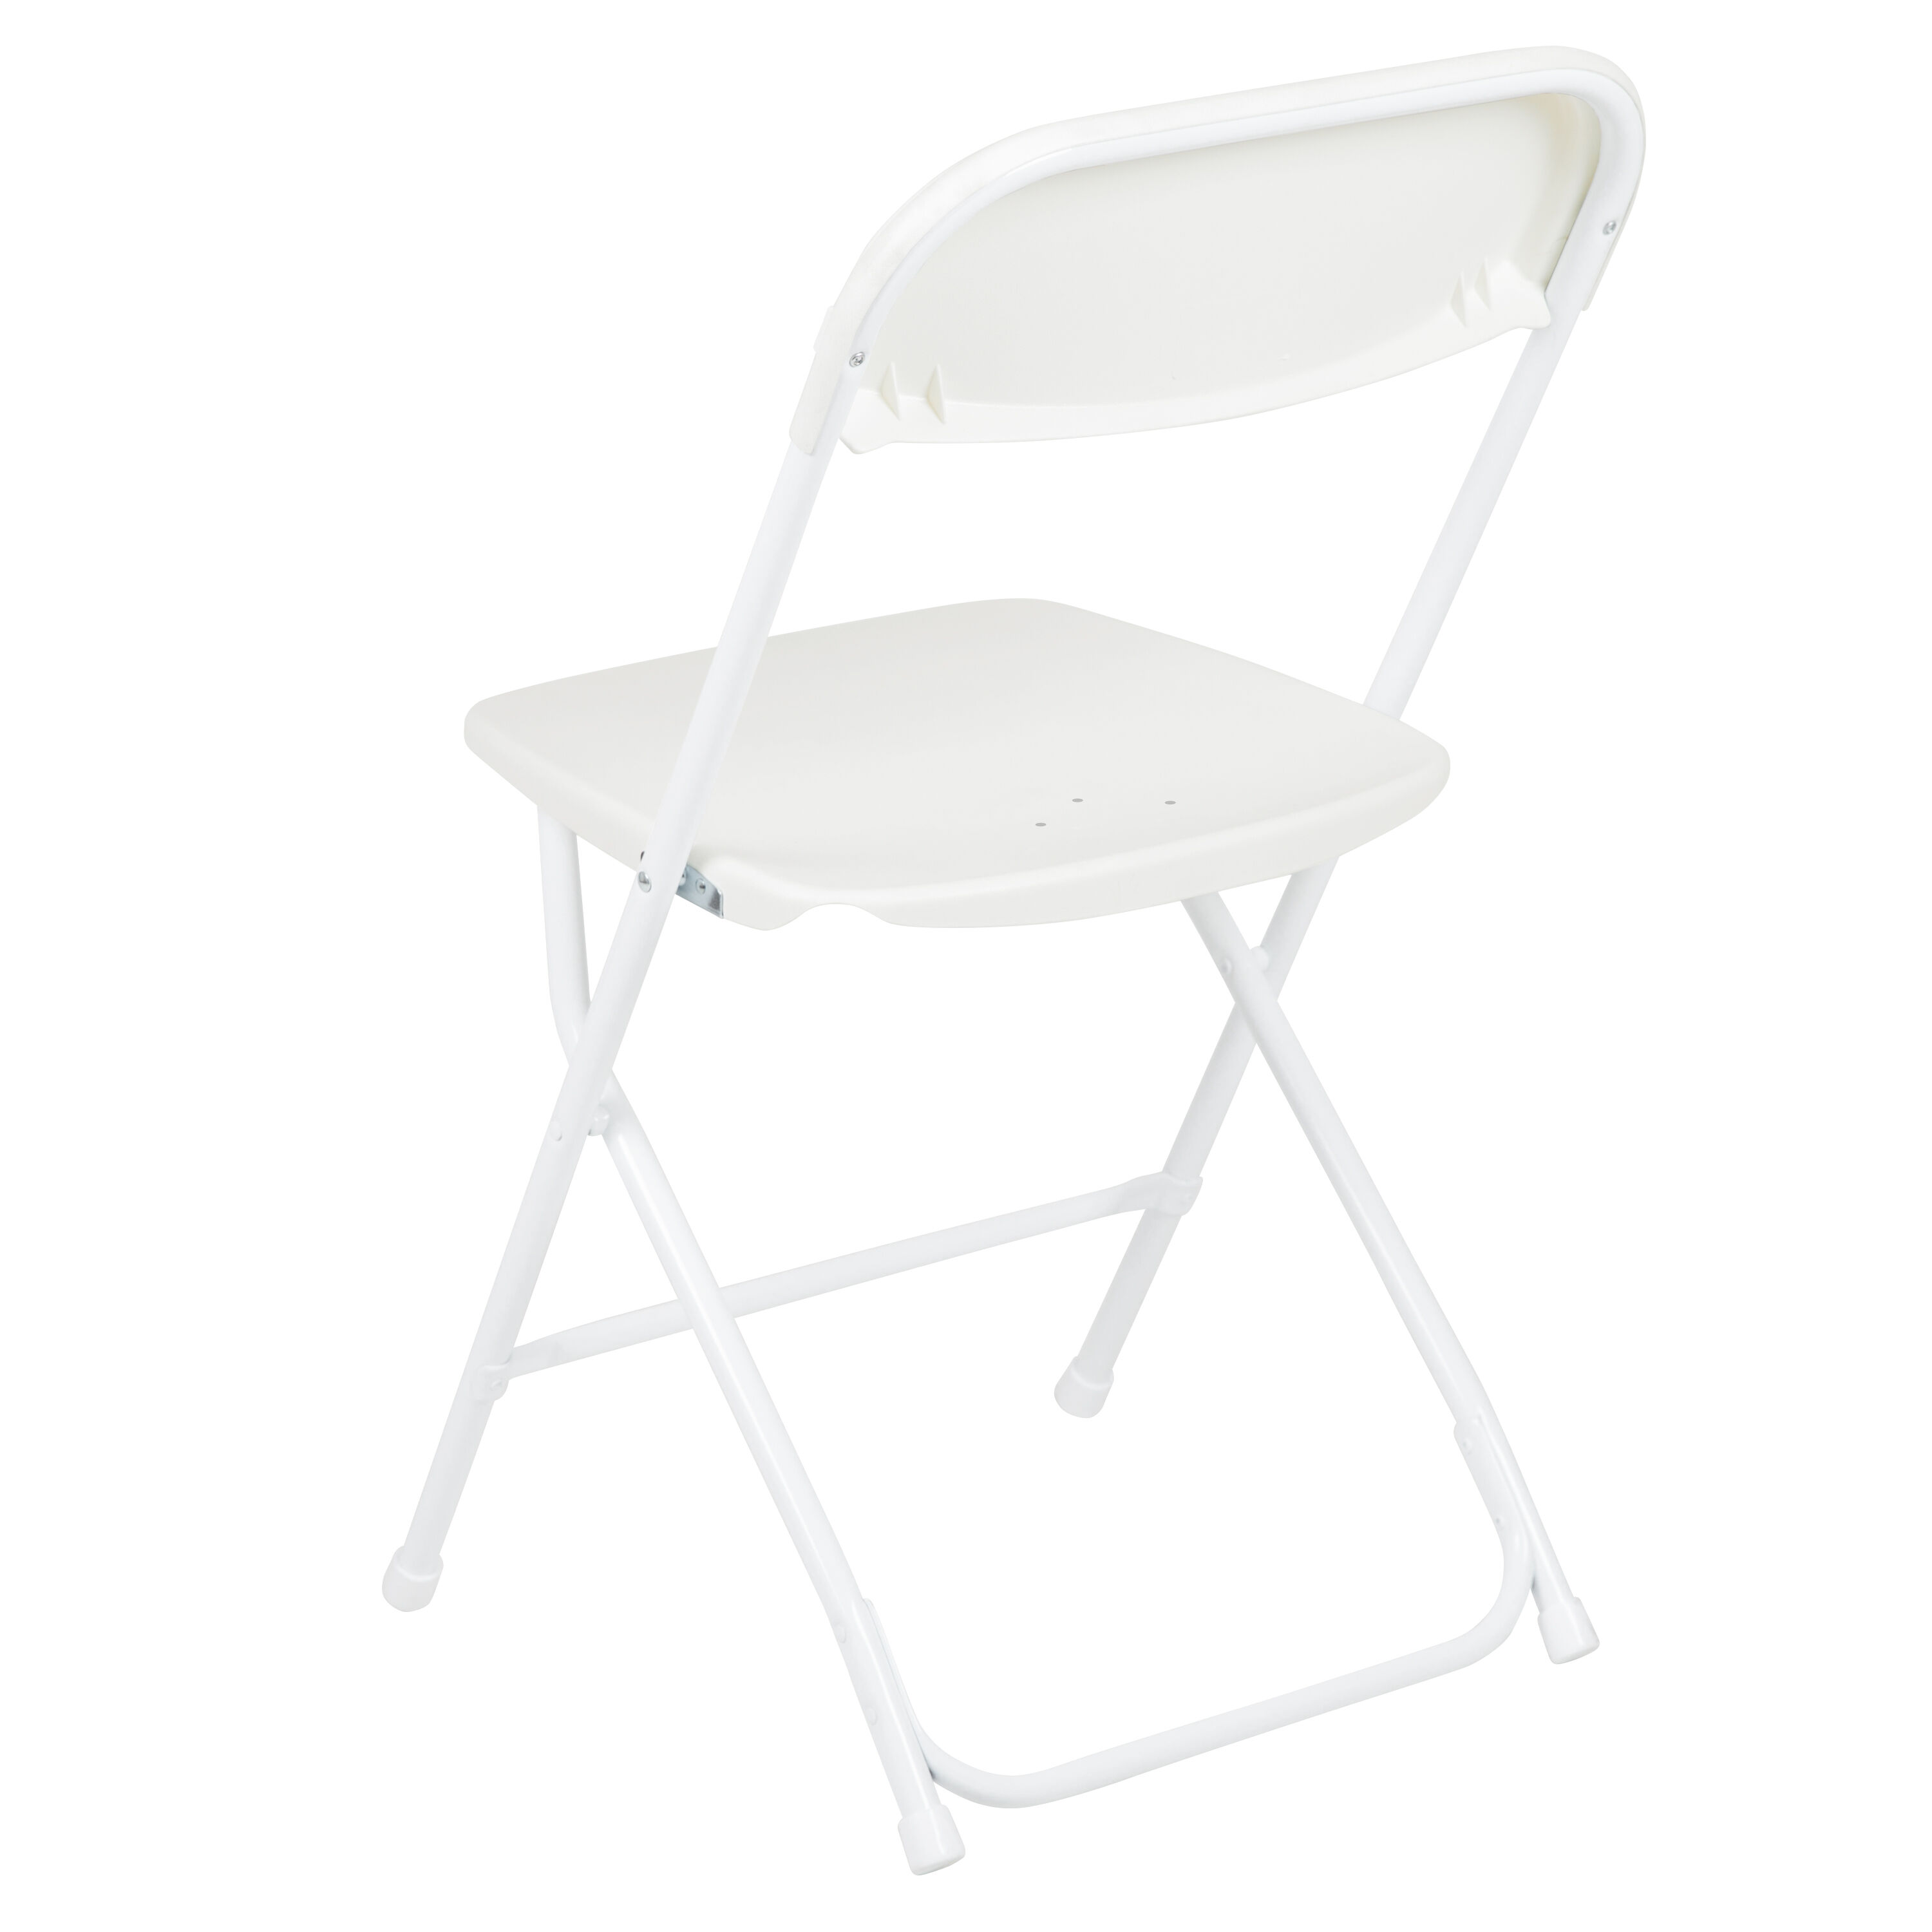 Superbe Capacity Premium White Plastic Folding Chair Is On Sale Now ...